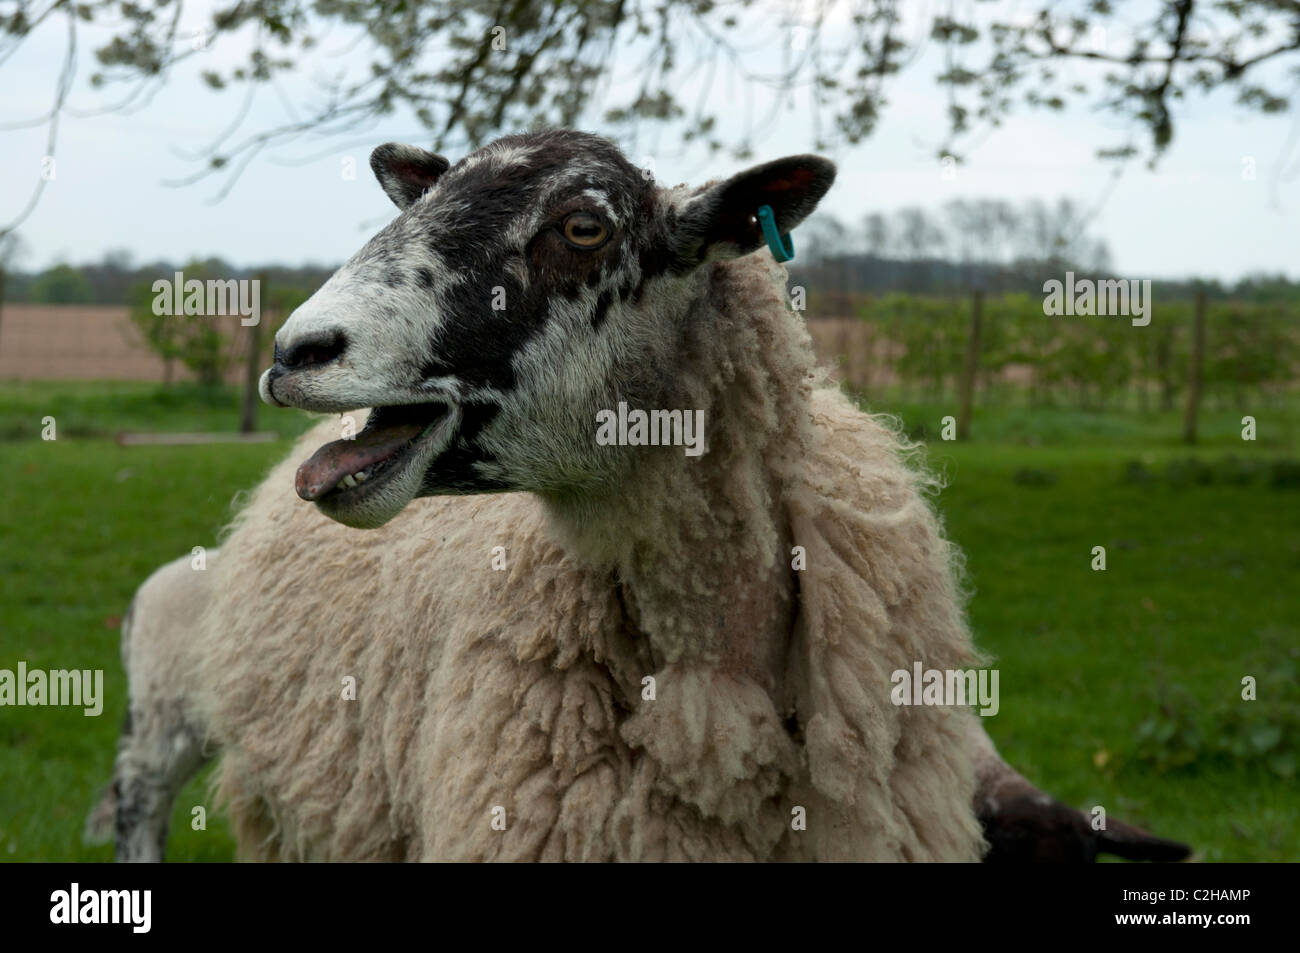 sheep with newborn lambs in Old Kent Cherry Orchard planted in the 1940s, in blossom England UK - Stock Image